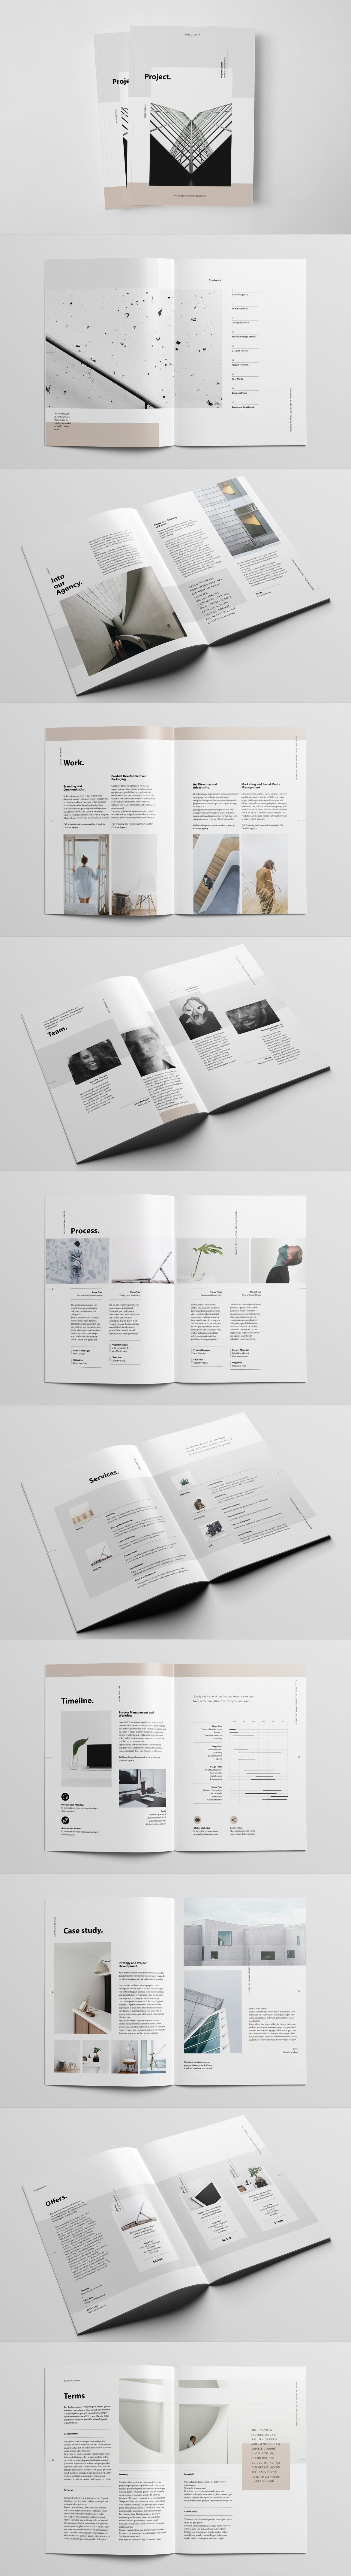 Project Proposal Brochure 22 Unique Layouts Template InDesign INDD ...